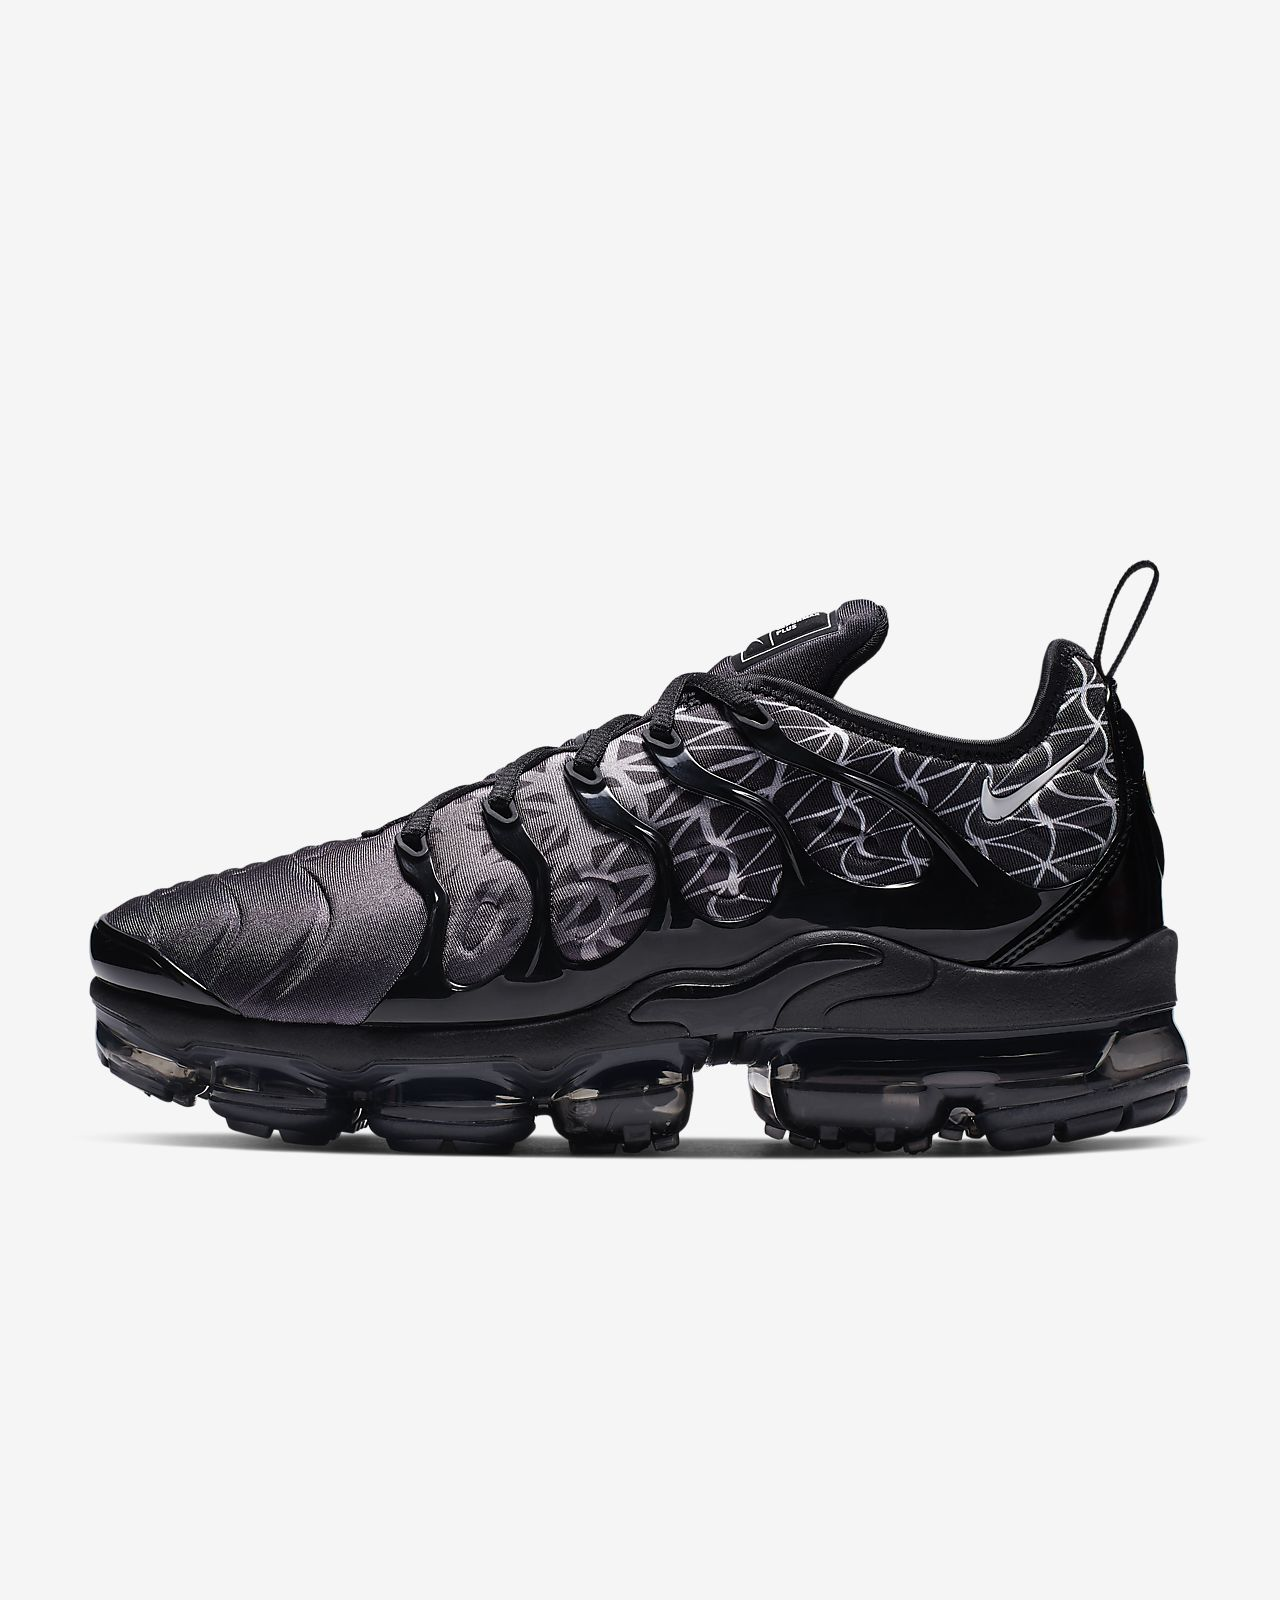 bffc561a17 Nike Air VaporMax Plus Men's Shoe. Nike.com CA